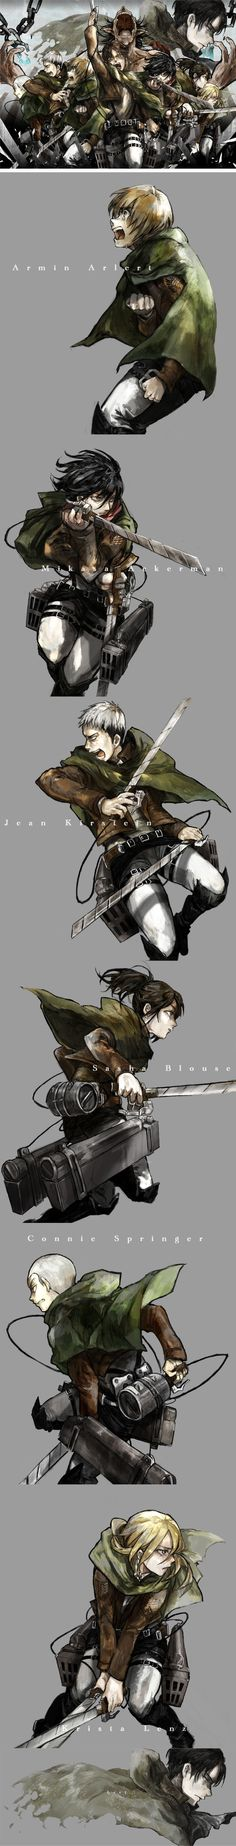 SnK. I love that it has everyone's last name and then there's just Levi. Not Levi Ackerman. Just Levi.